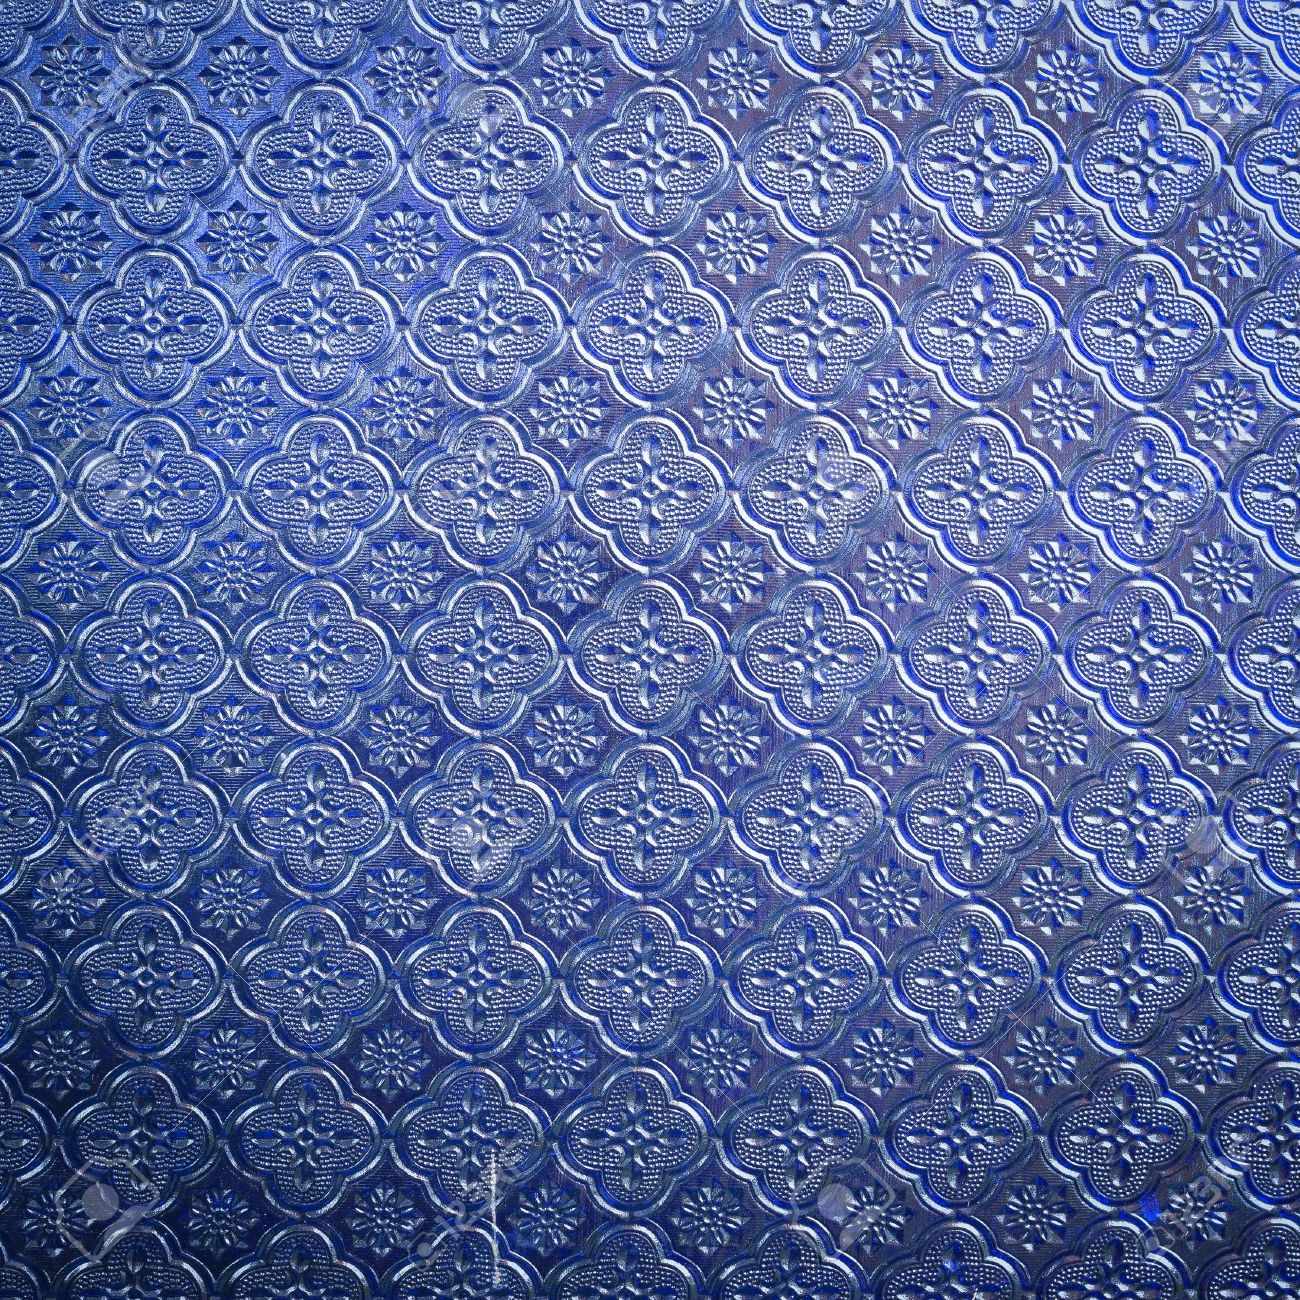 Glass window texture - Stained Glass Window Texture Pattern Background Stock Photo 17302818